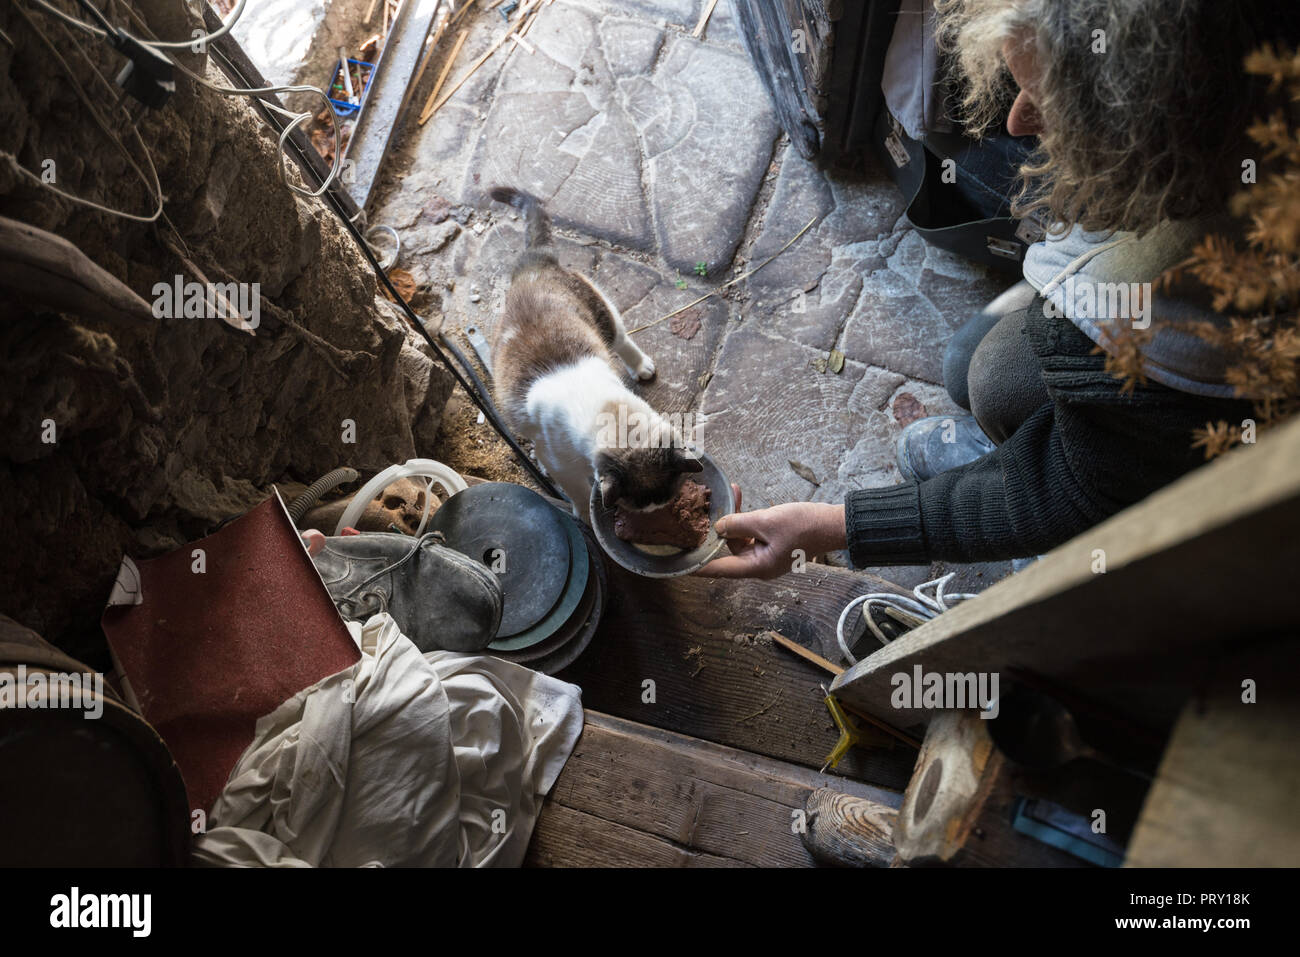 High angle view of old man with unkempt long gray hair feeding cat by the door in old messy house. - Stock Image